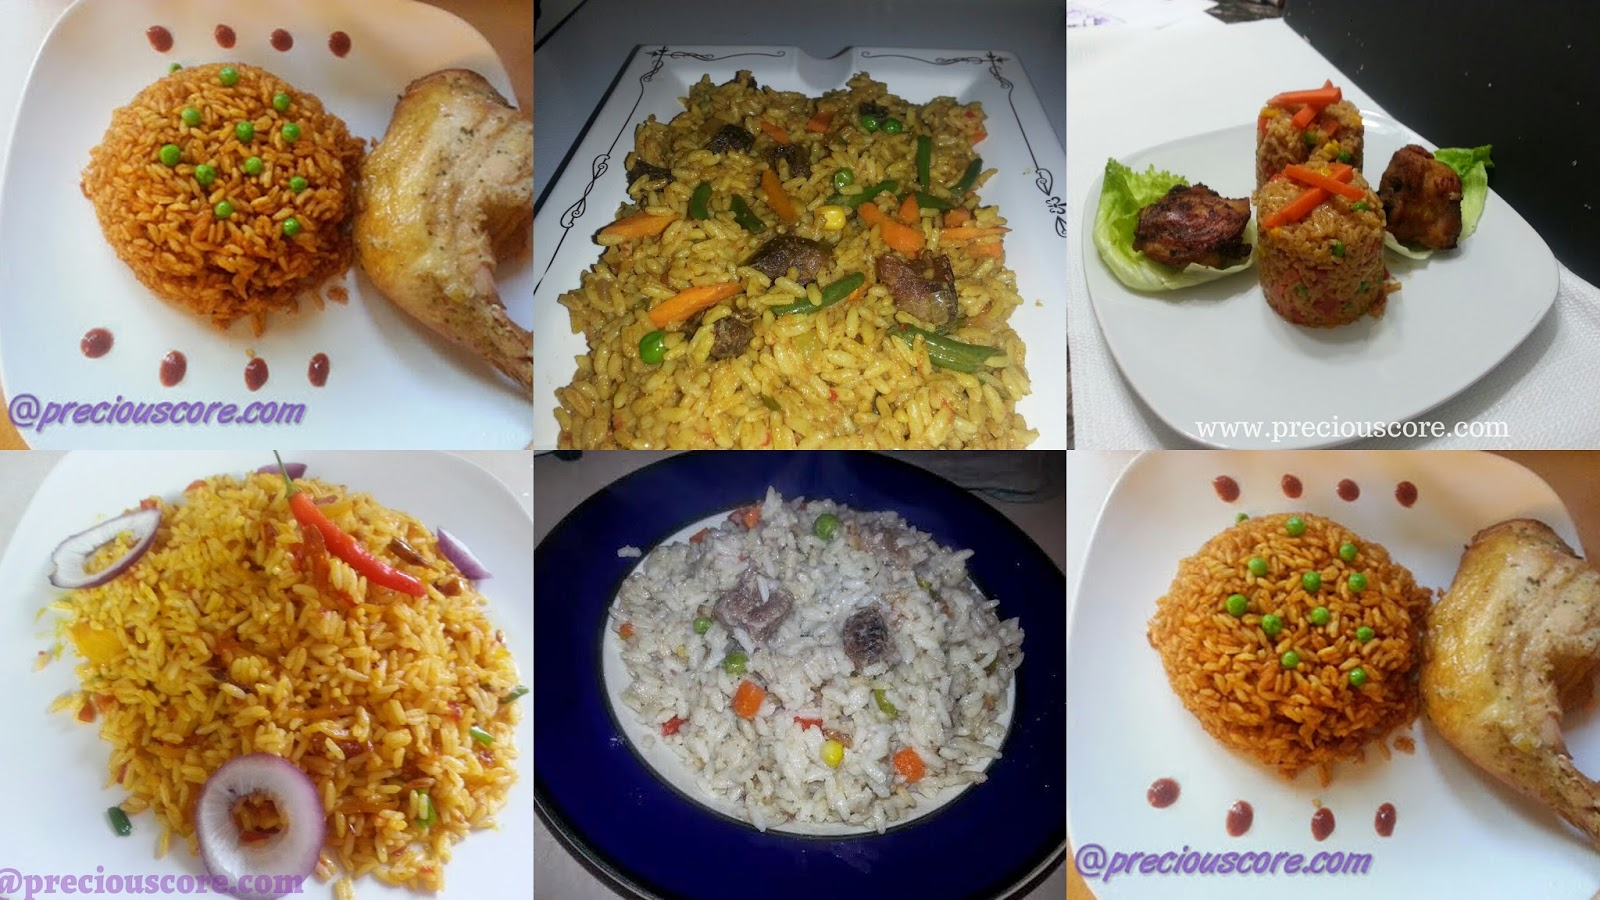 5 jollof rice recipes you must make precious core jollof rice recipes for world jollof rice day ccuart Gallery